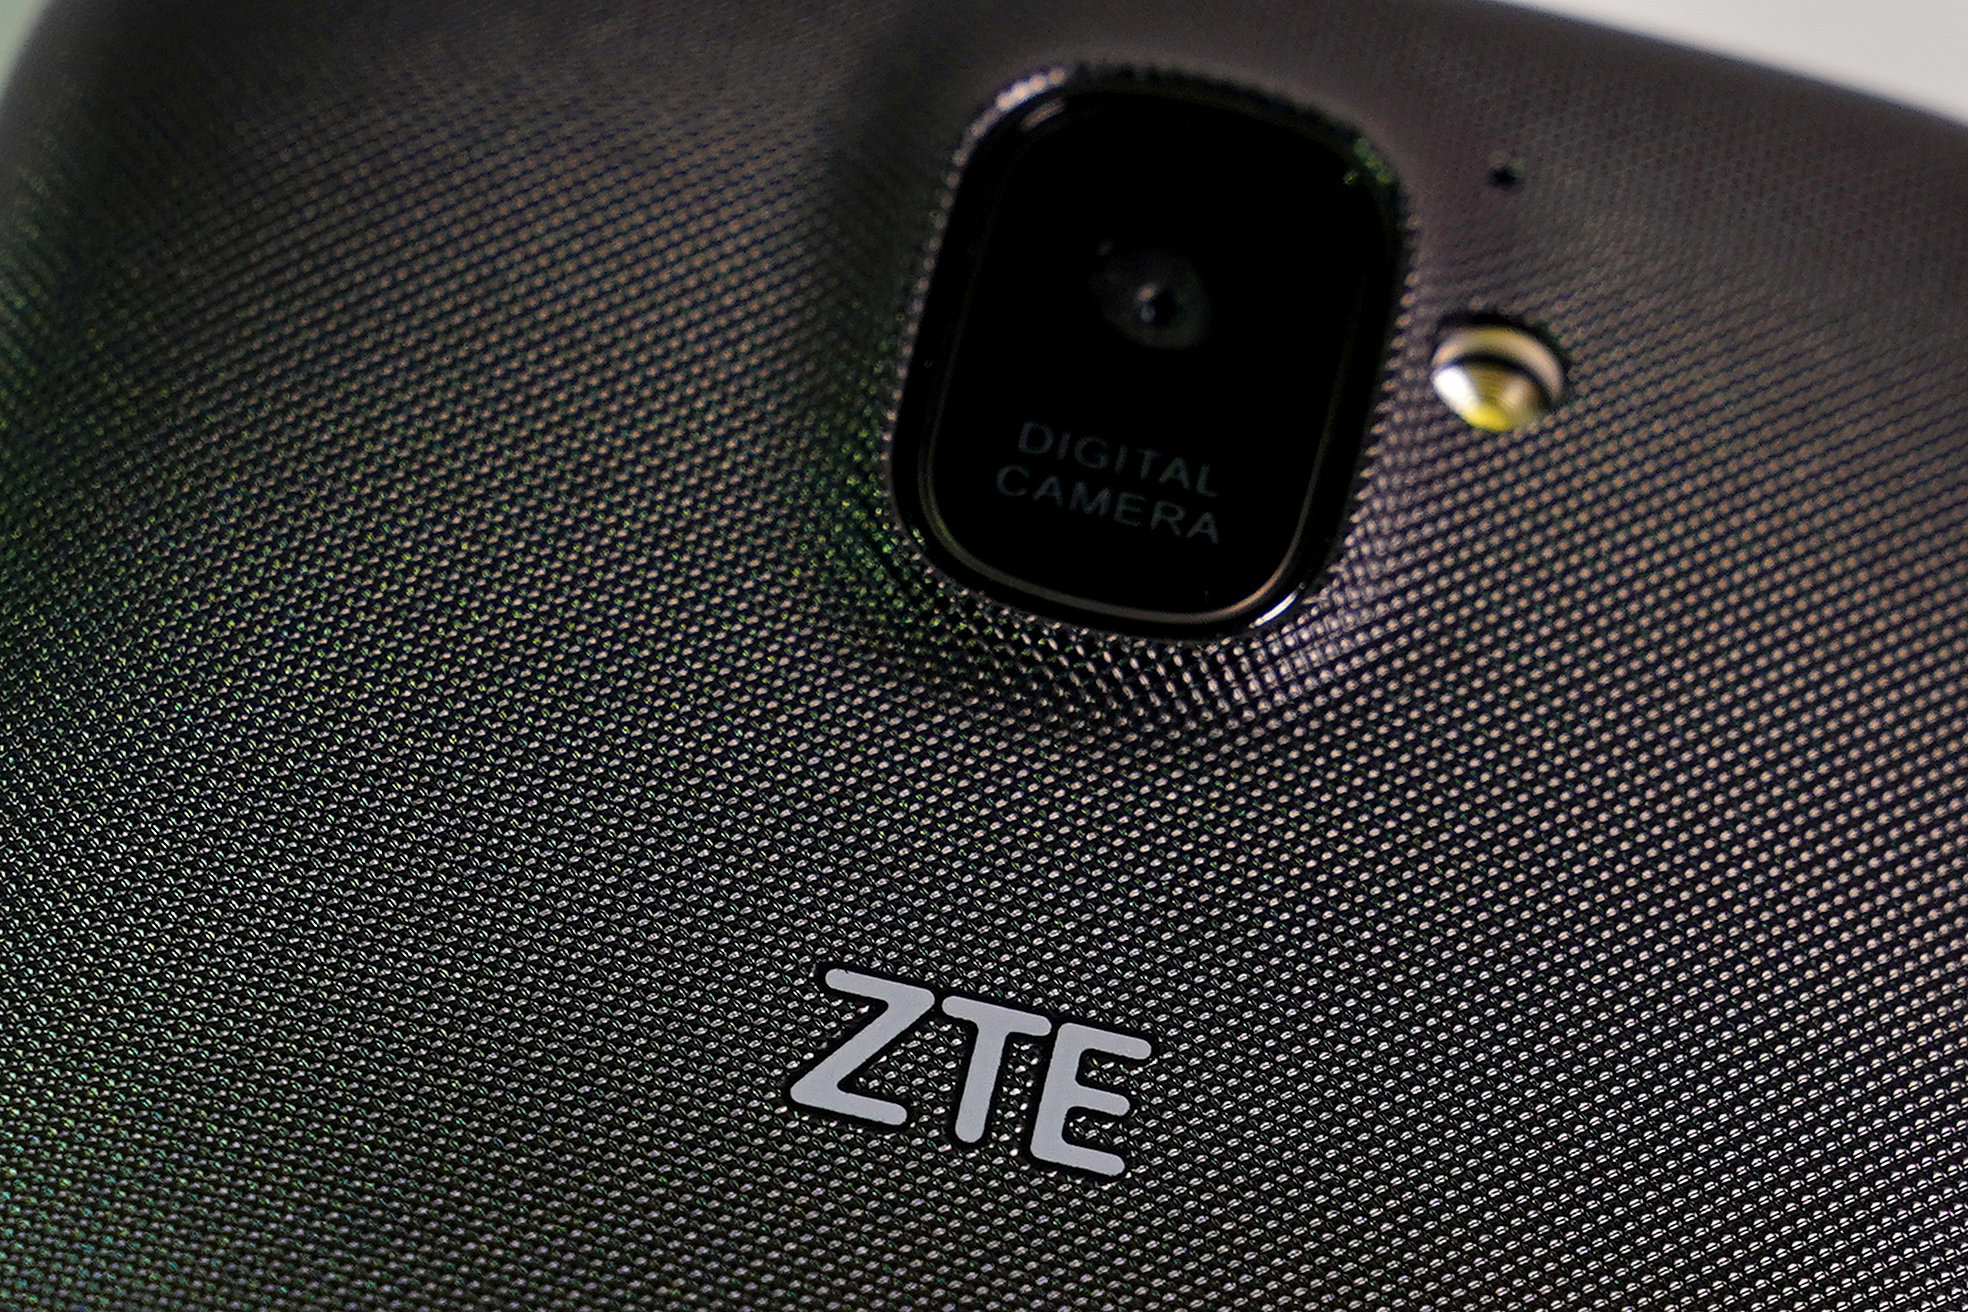 The U.S. strikes a deal with Chinese electronics giant ZTE